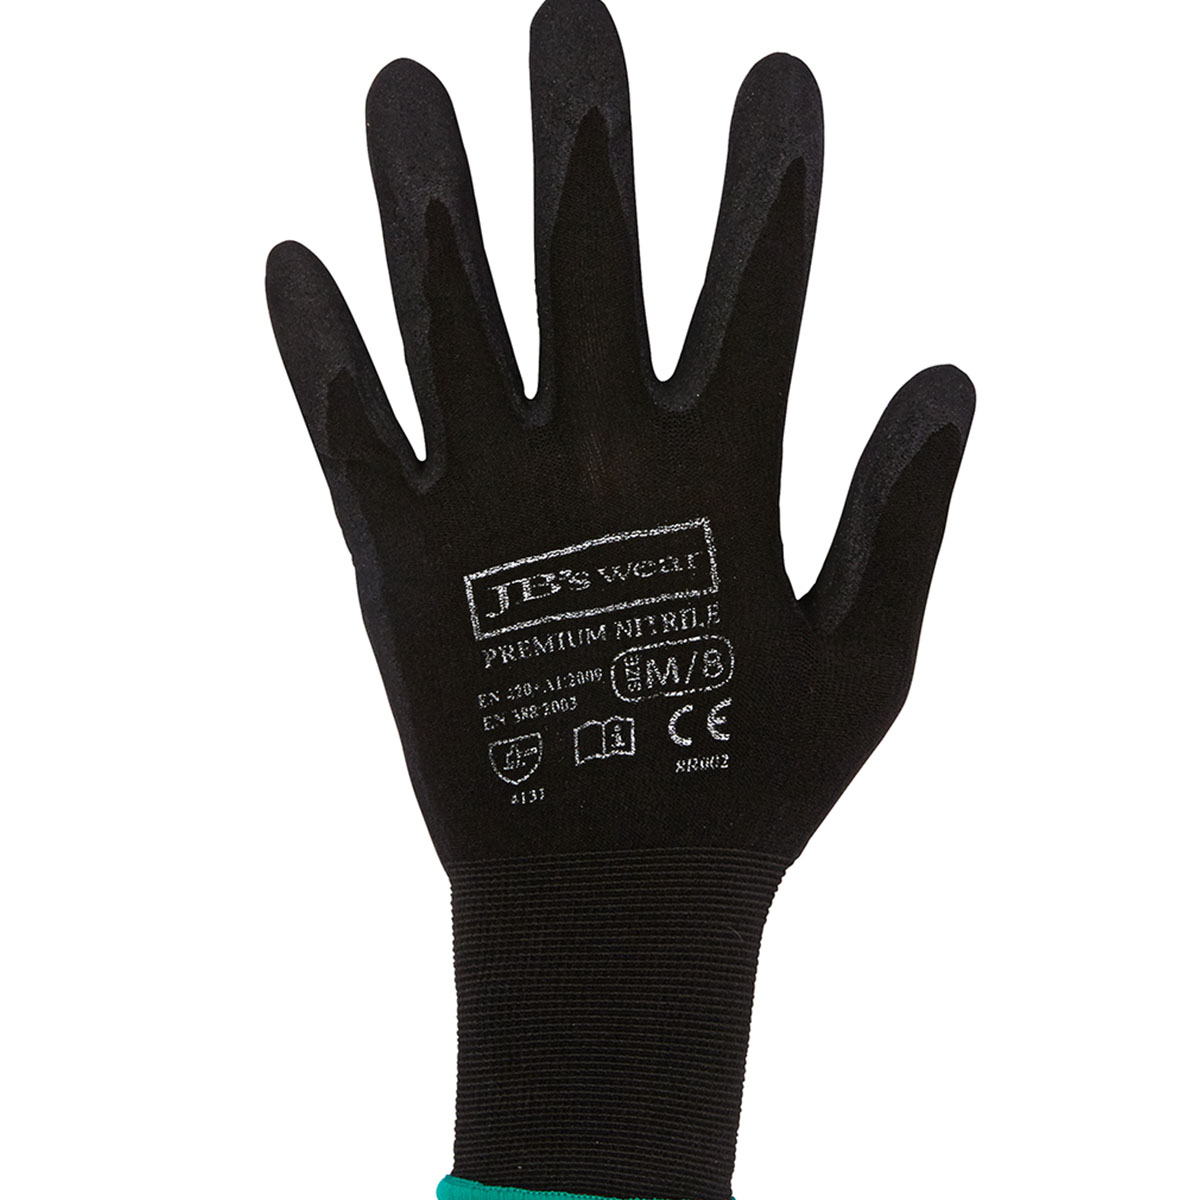 Premium Black Nitrile Glove-Black